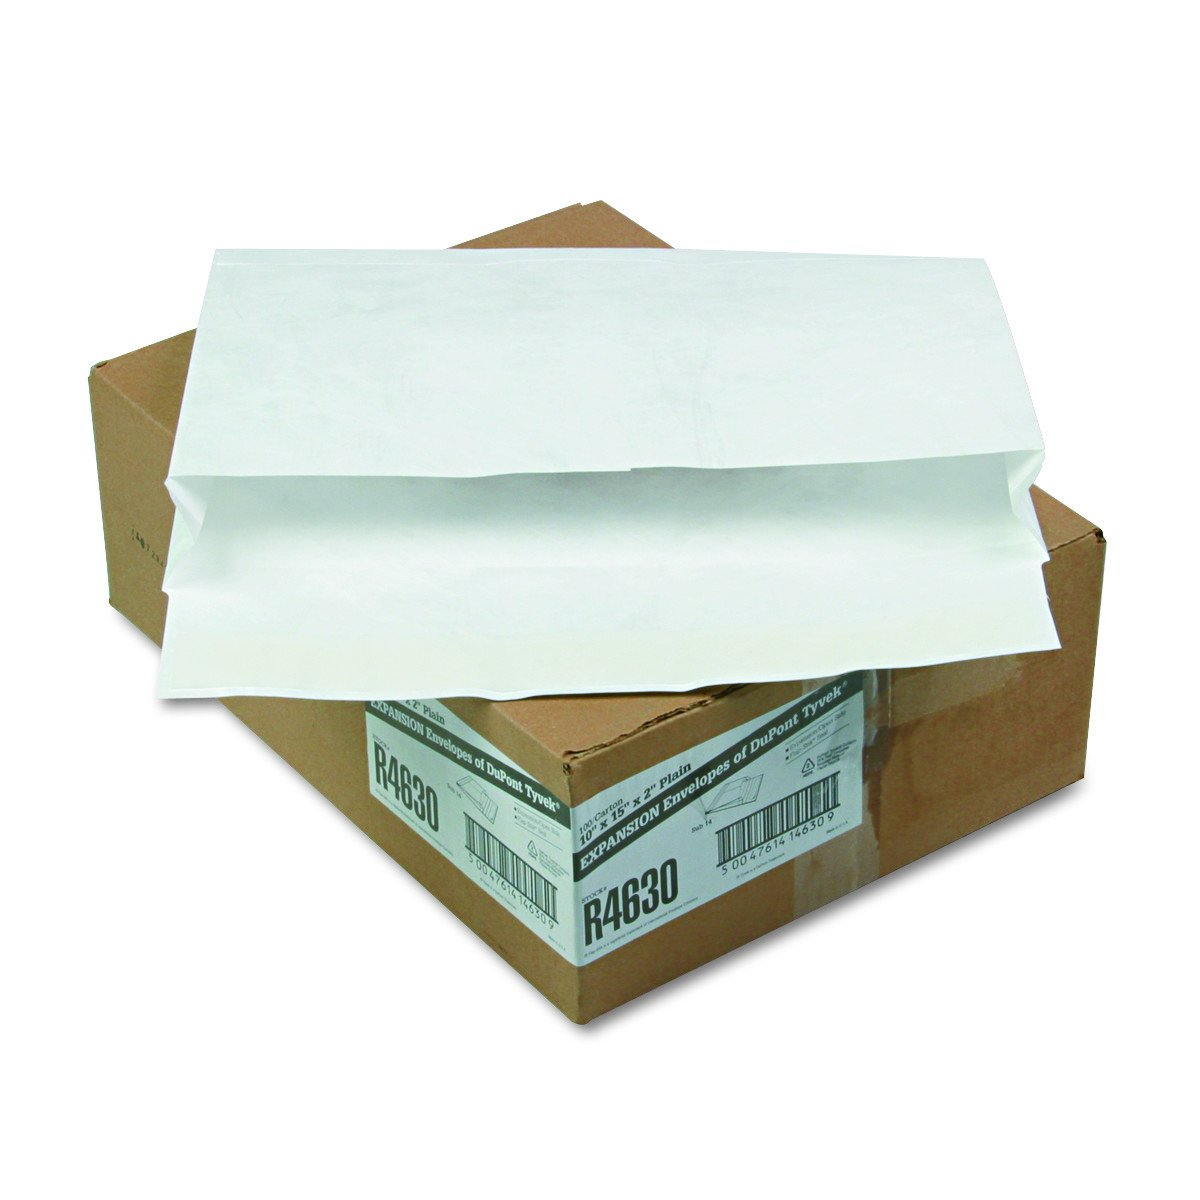 Quality Park Tyvek Open Side Expansion Envelopes, 10 x 15, White, 100 per Carton (R4630)